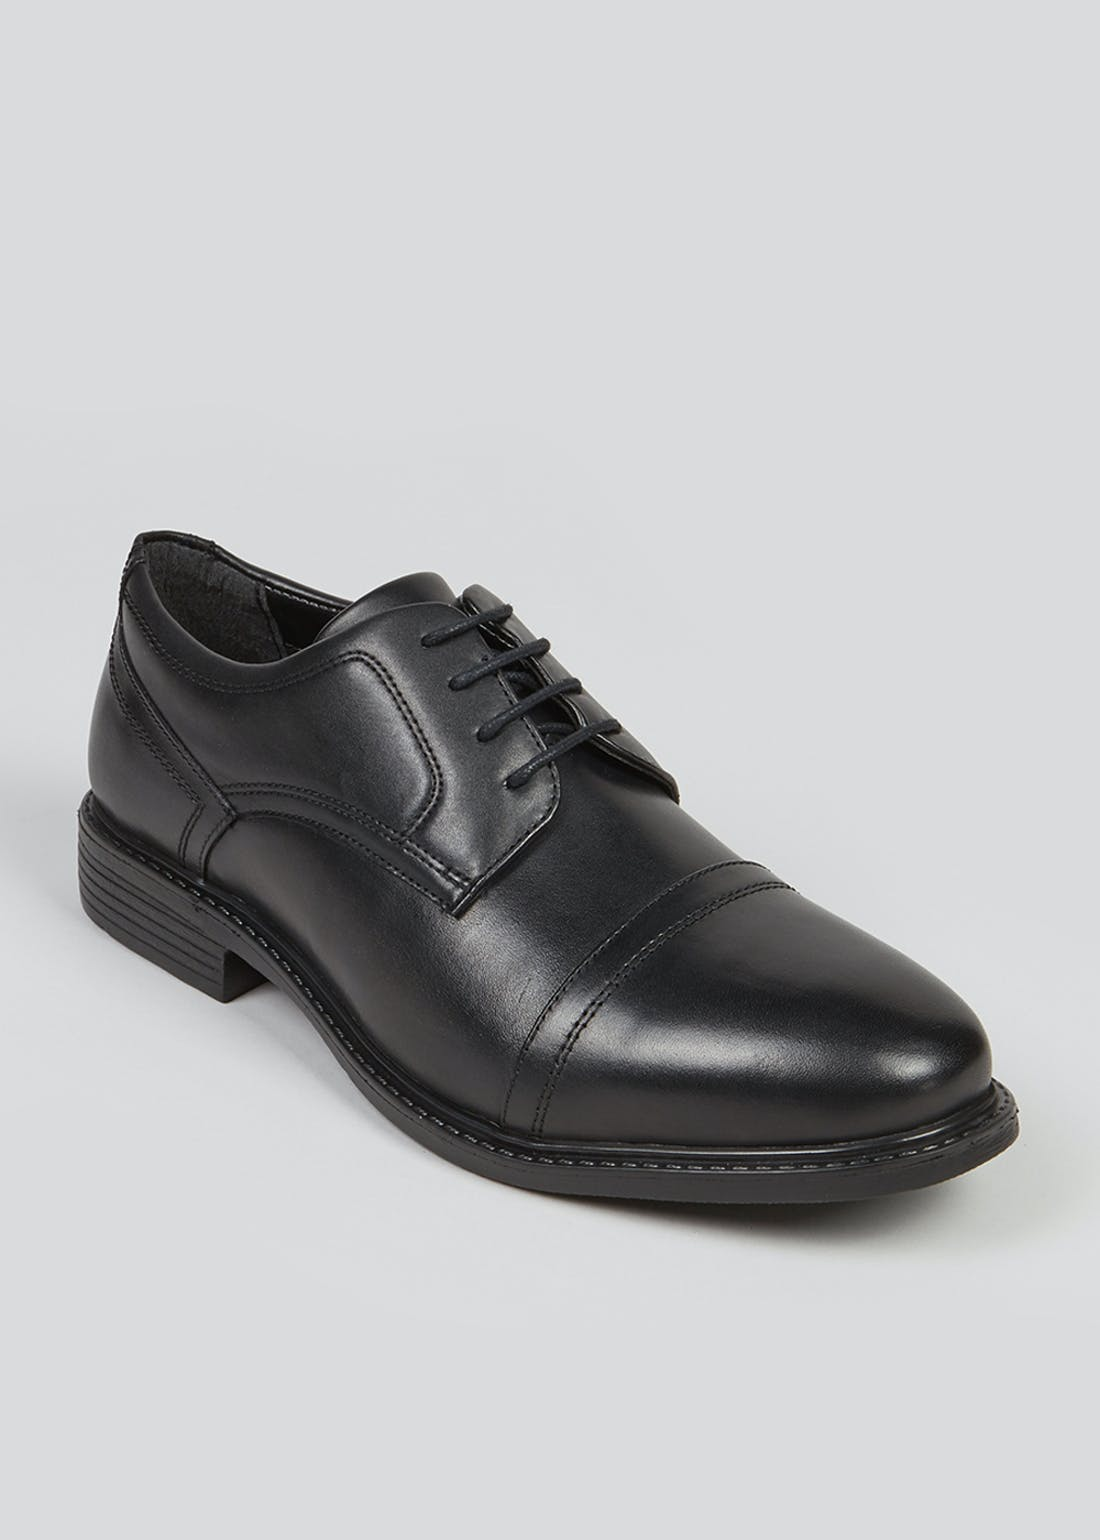 Black Toe Cap Formal Gibson Shoes